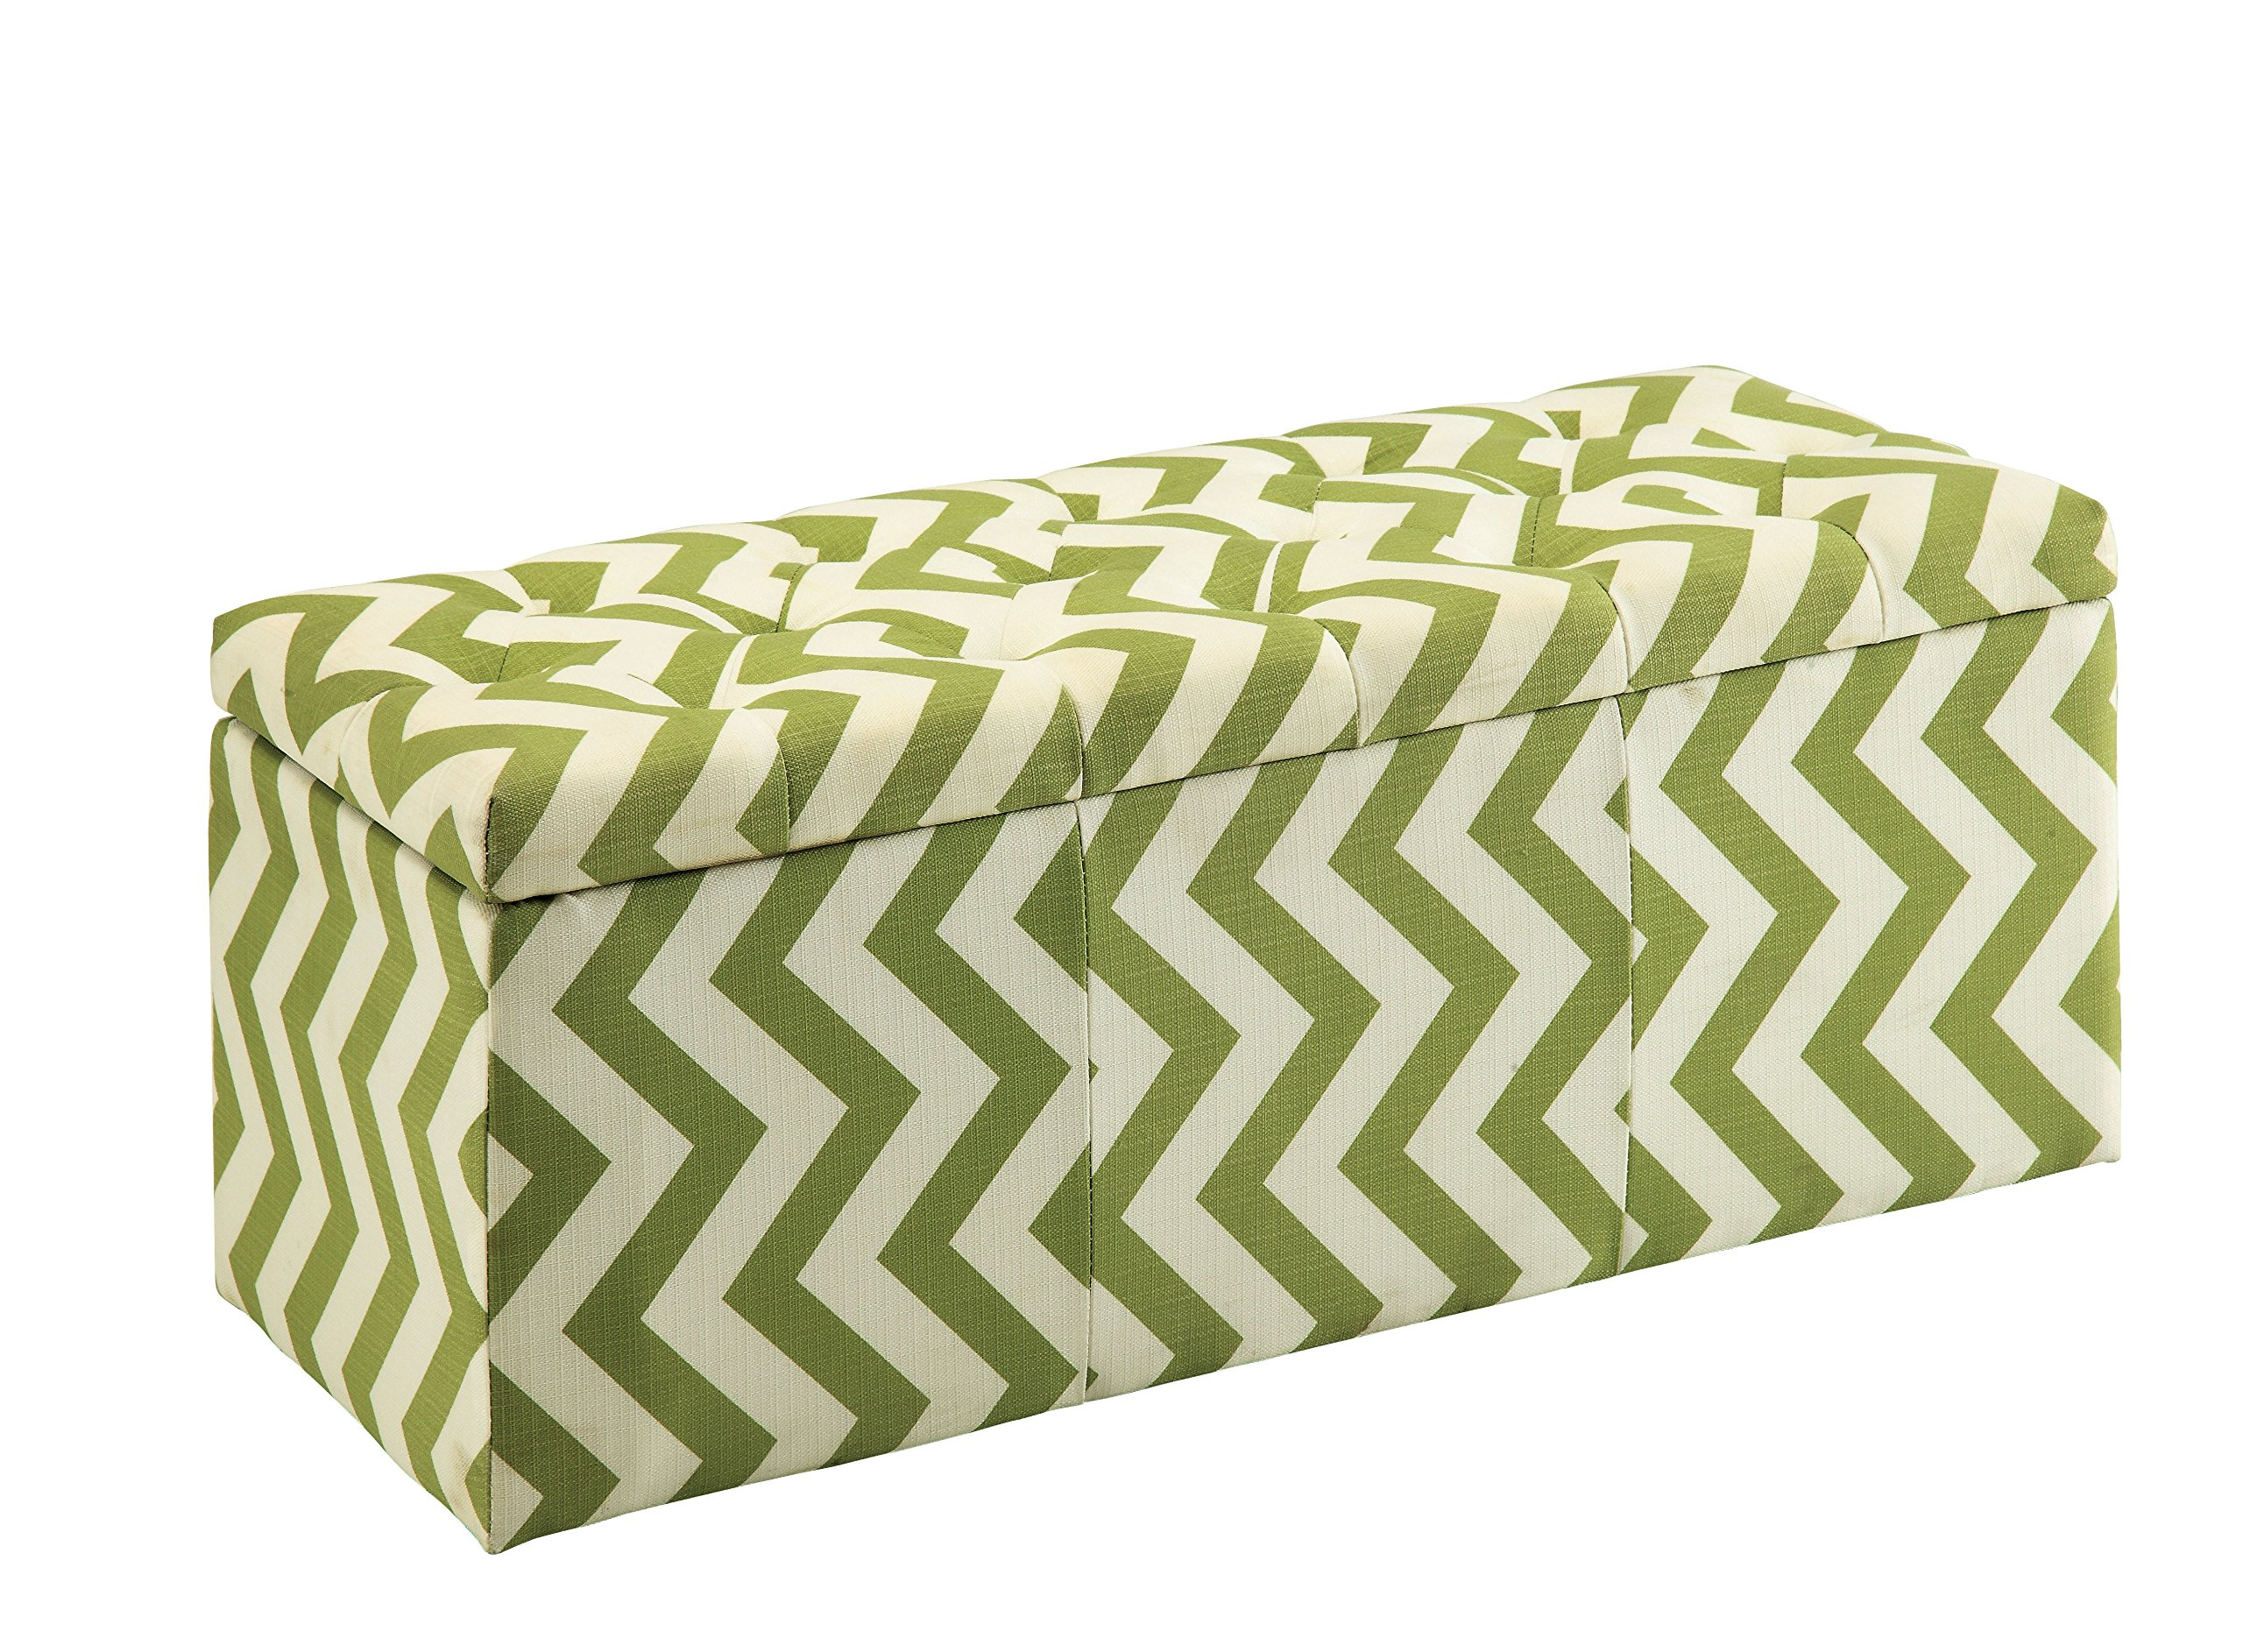 HOMES: Inside + Out IDF-BN6031GR Willy Chevron Storage Ottoman, Green